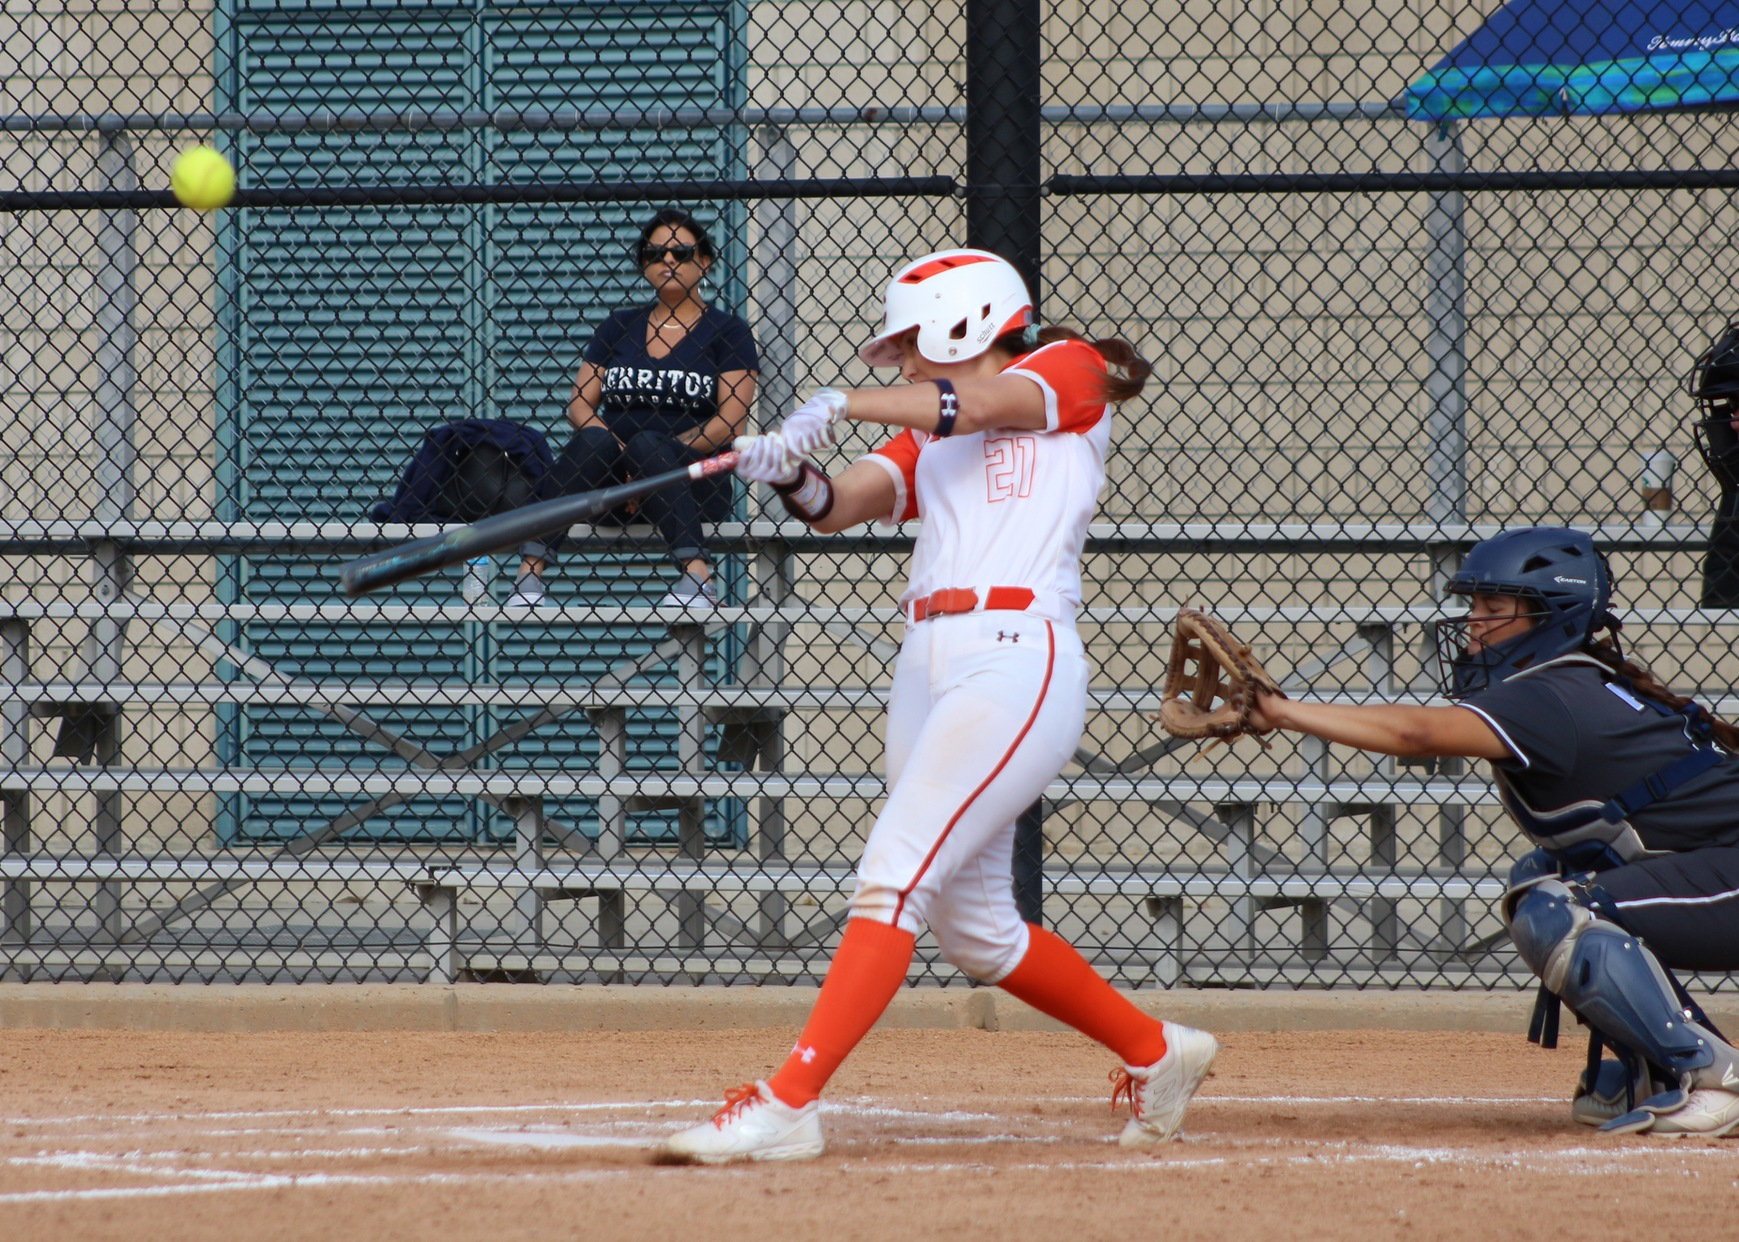 Emily Paredez drives a ball to left center. Image: Treyvon Watts-Hale